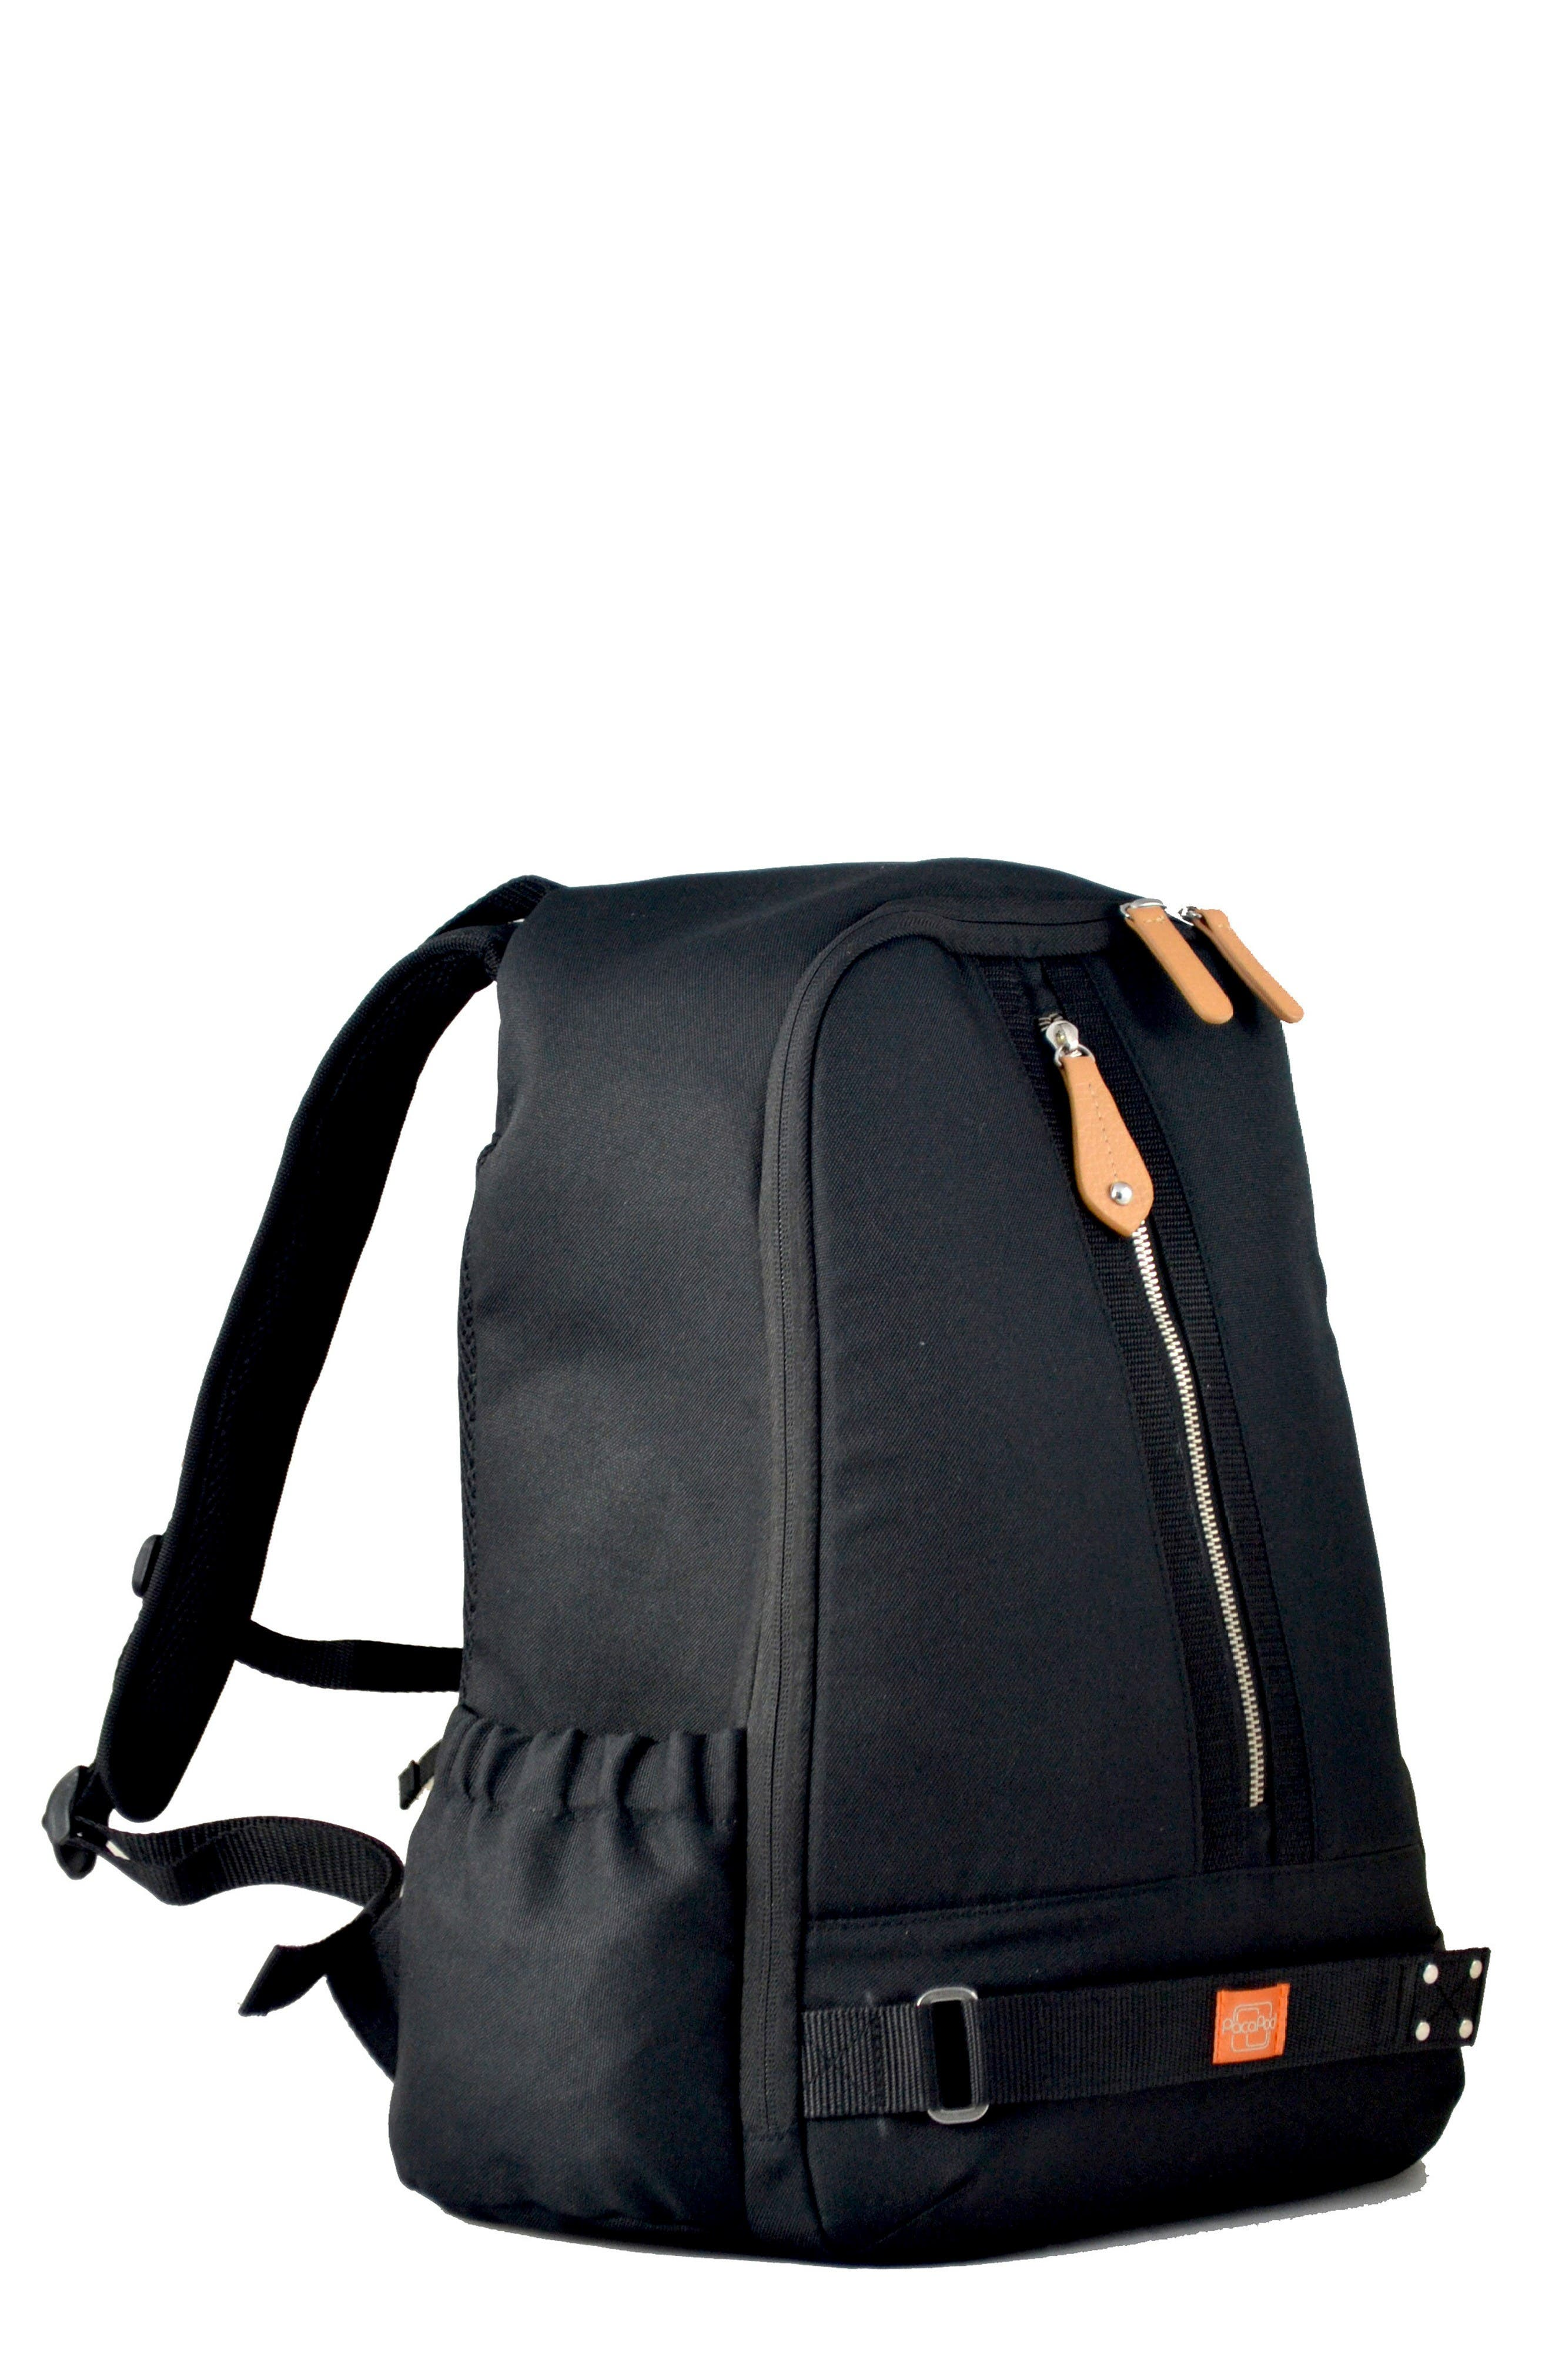 PacaPod Picos Pack Diaper Backpack